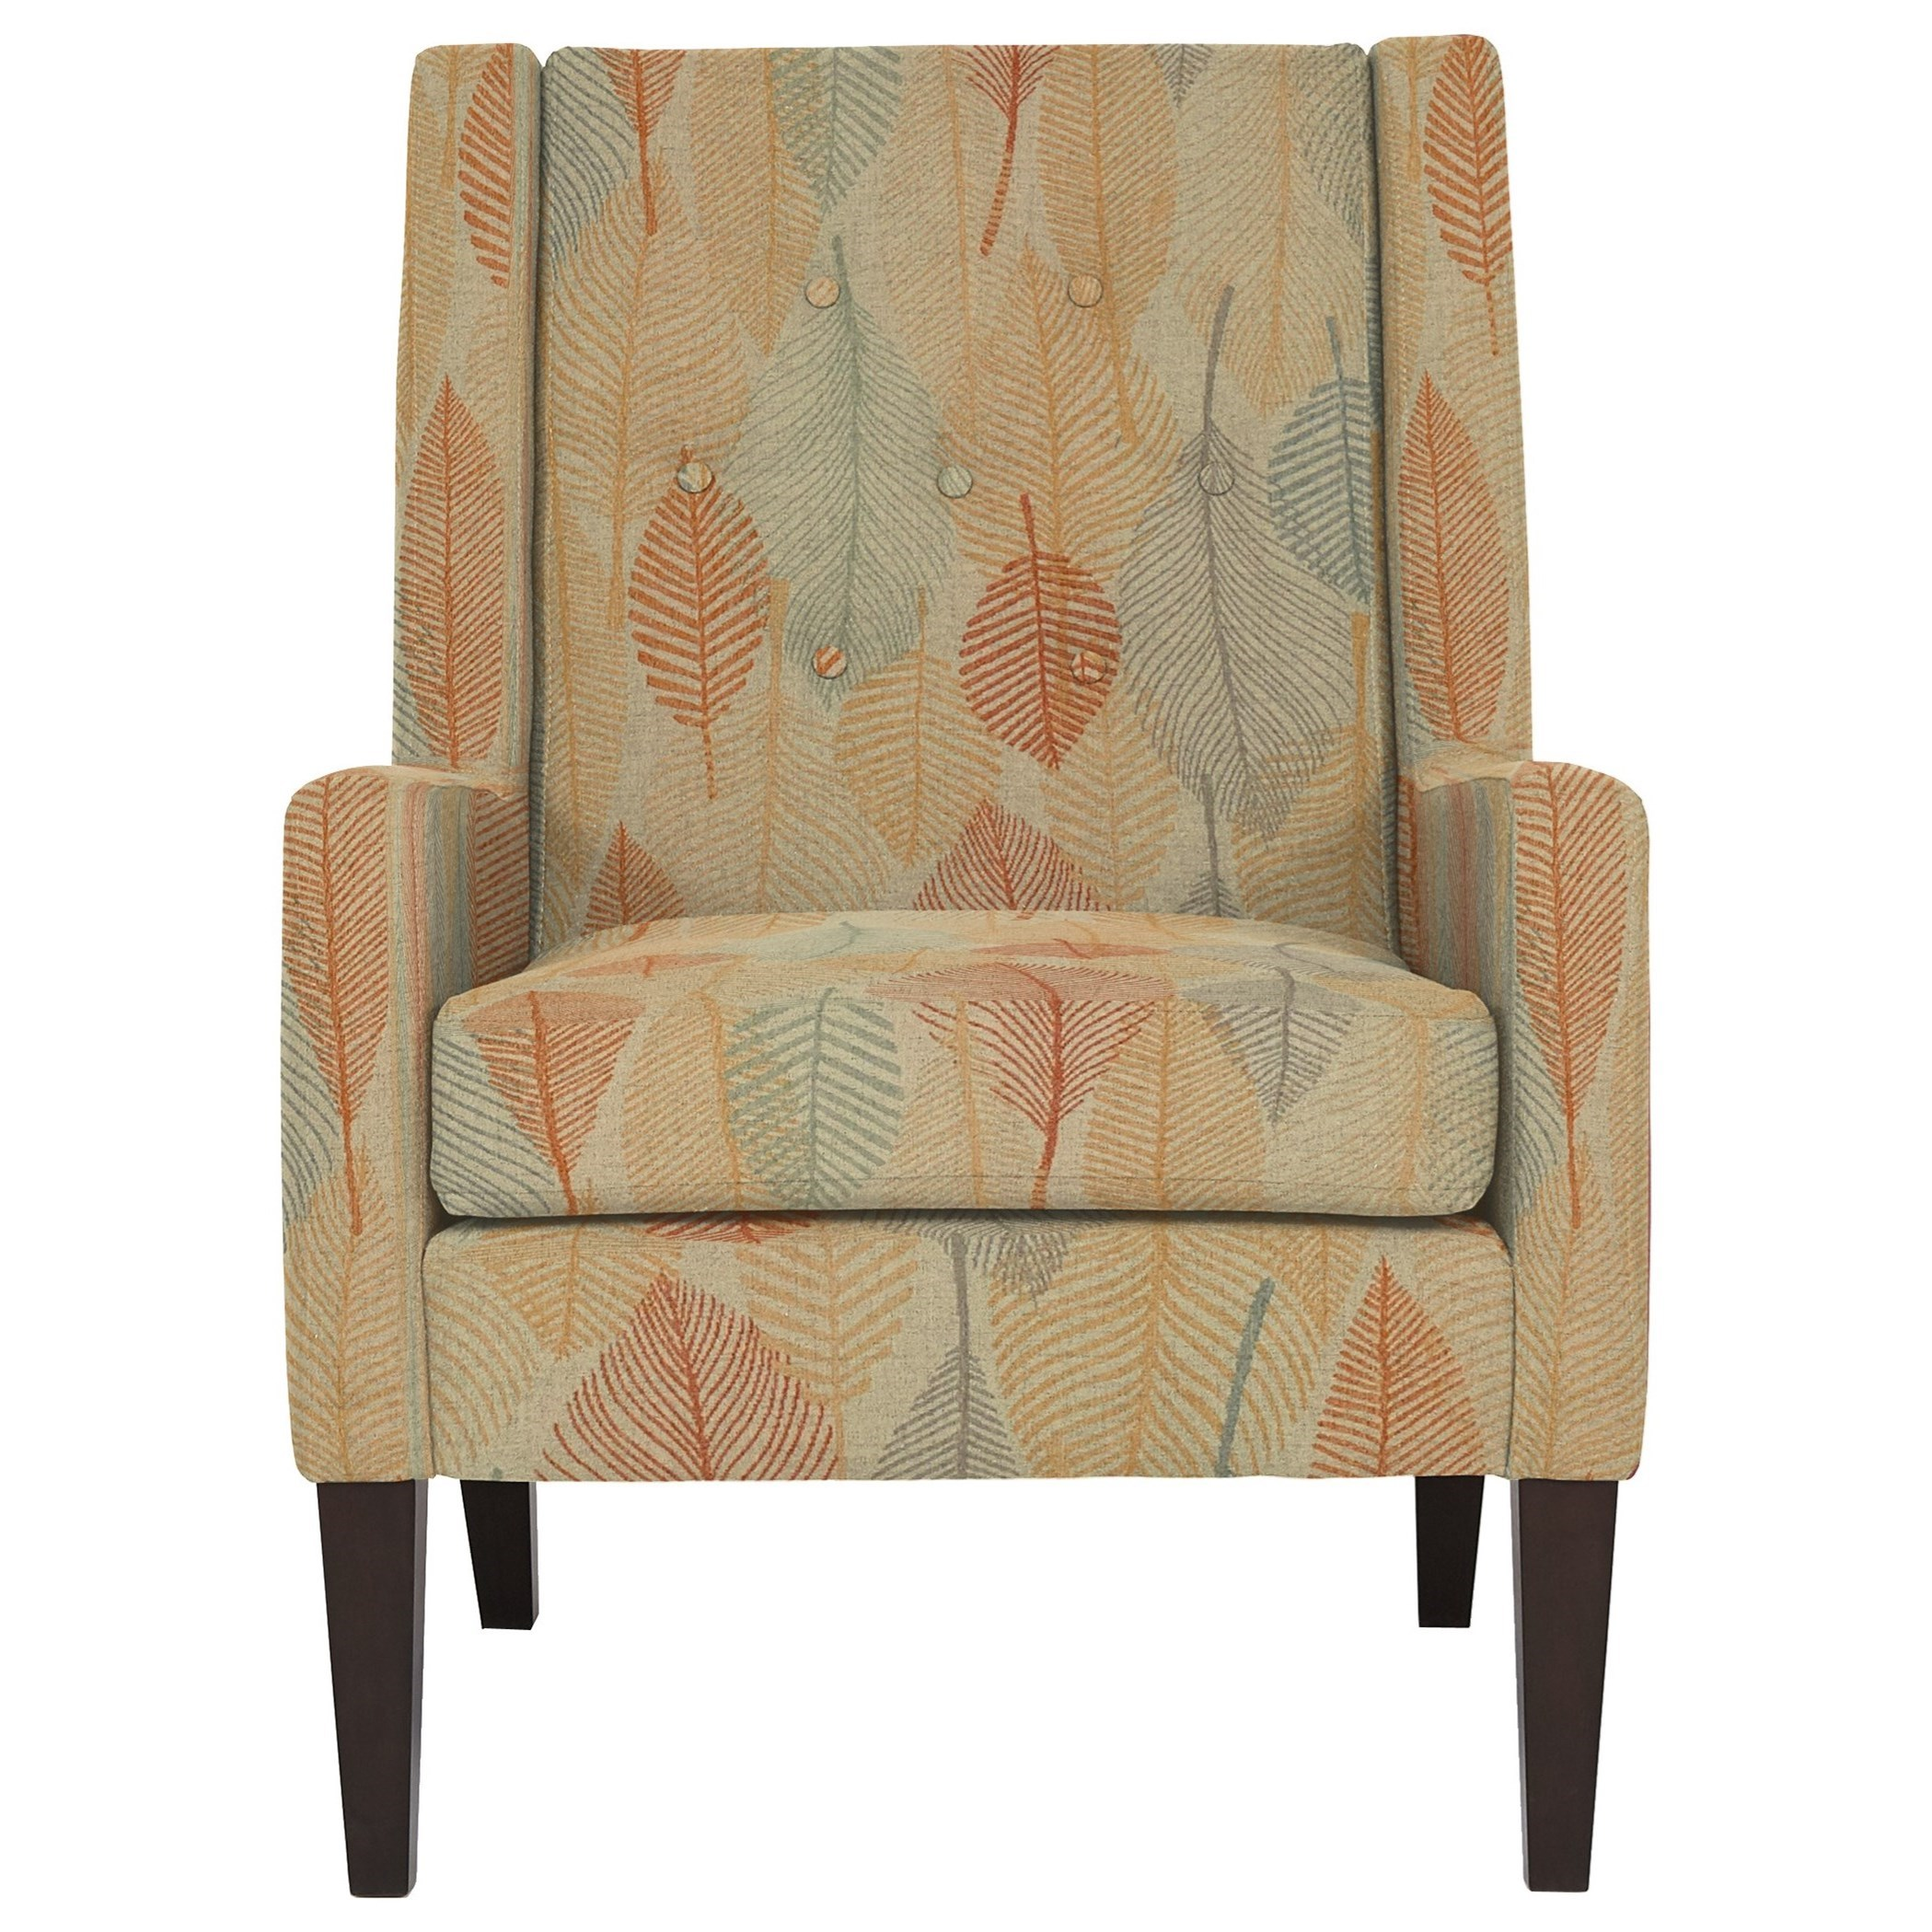 Best Home Furnishings Chairs - Accent Chair - Item Number: 2510E-34914